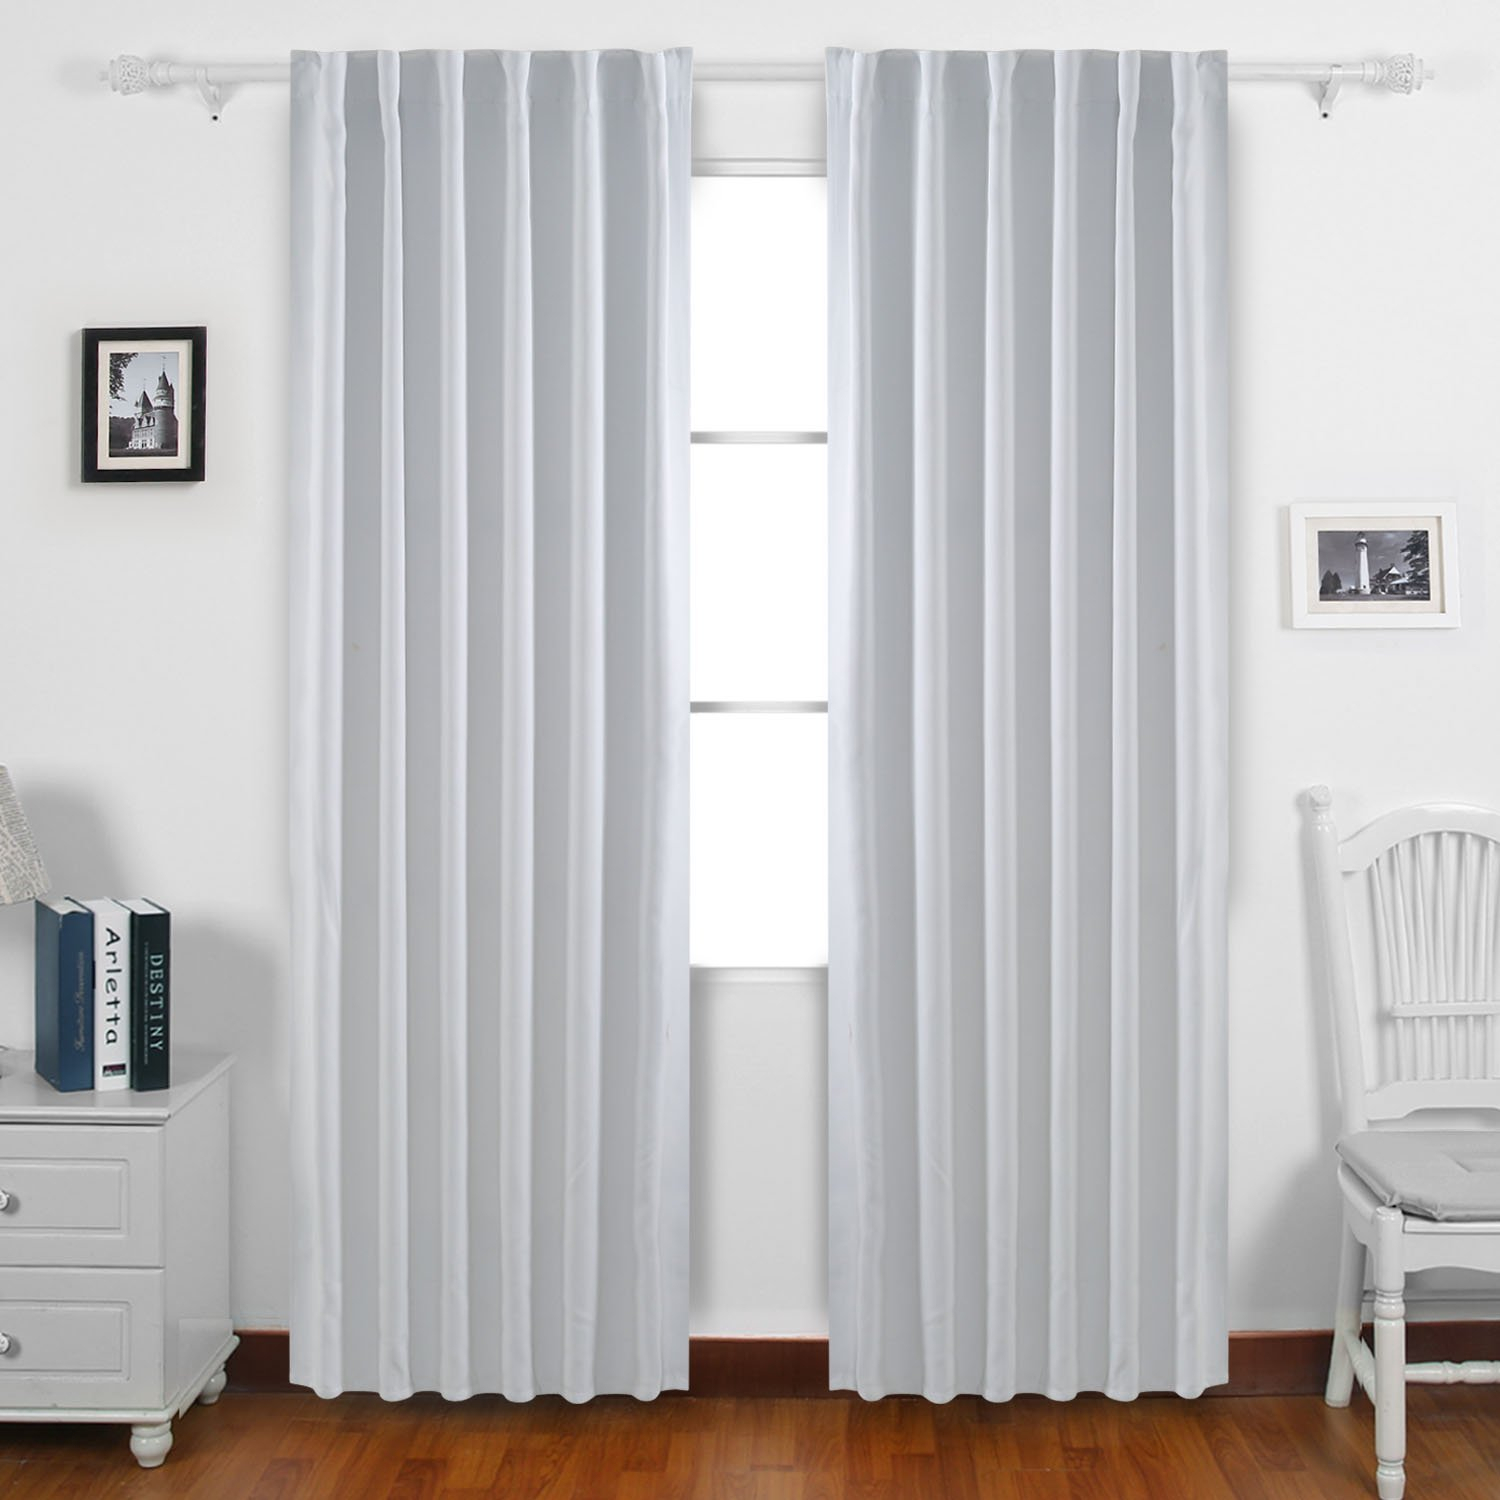 Cheap White Rod Pocket Curtains, Find White Rod Pocket Pertaining To Hayden Rod Pocket Blackout Panels (View 20 of 20)